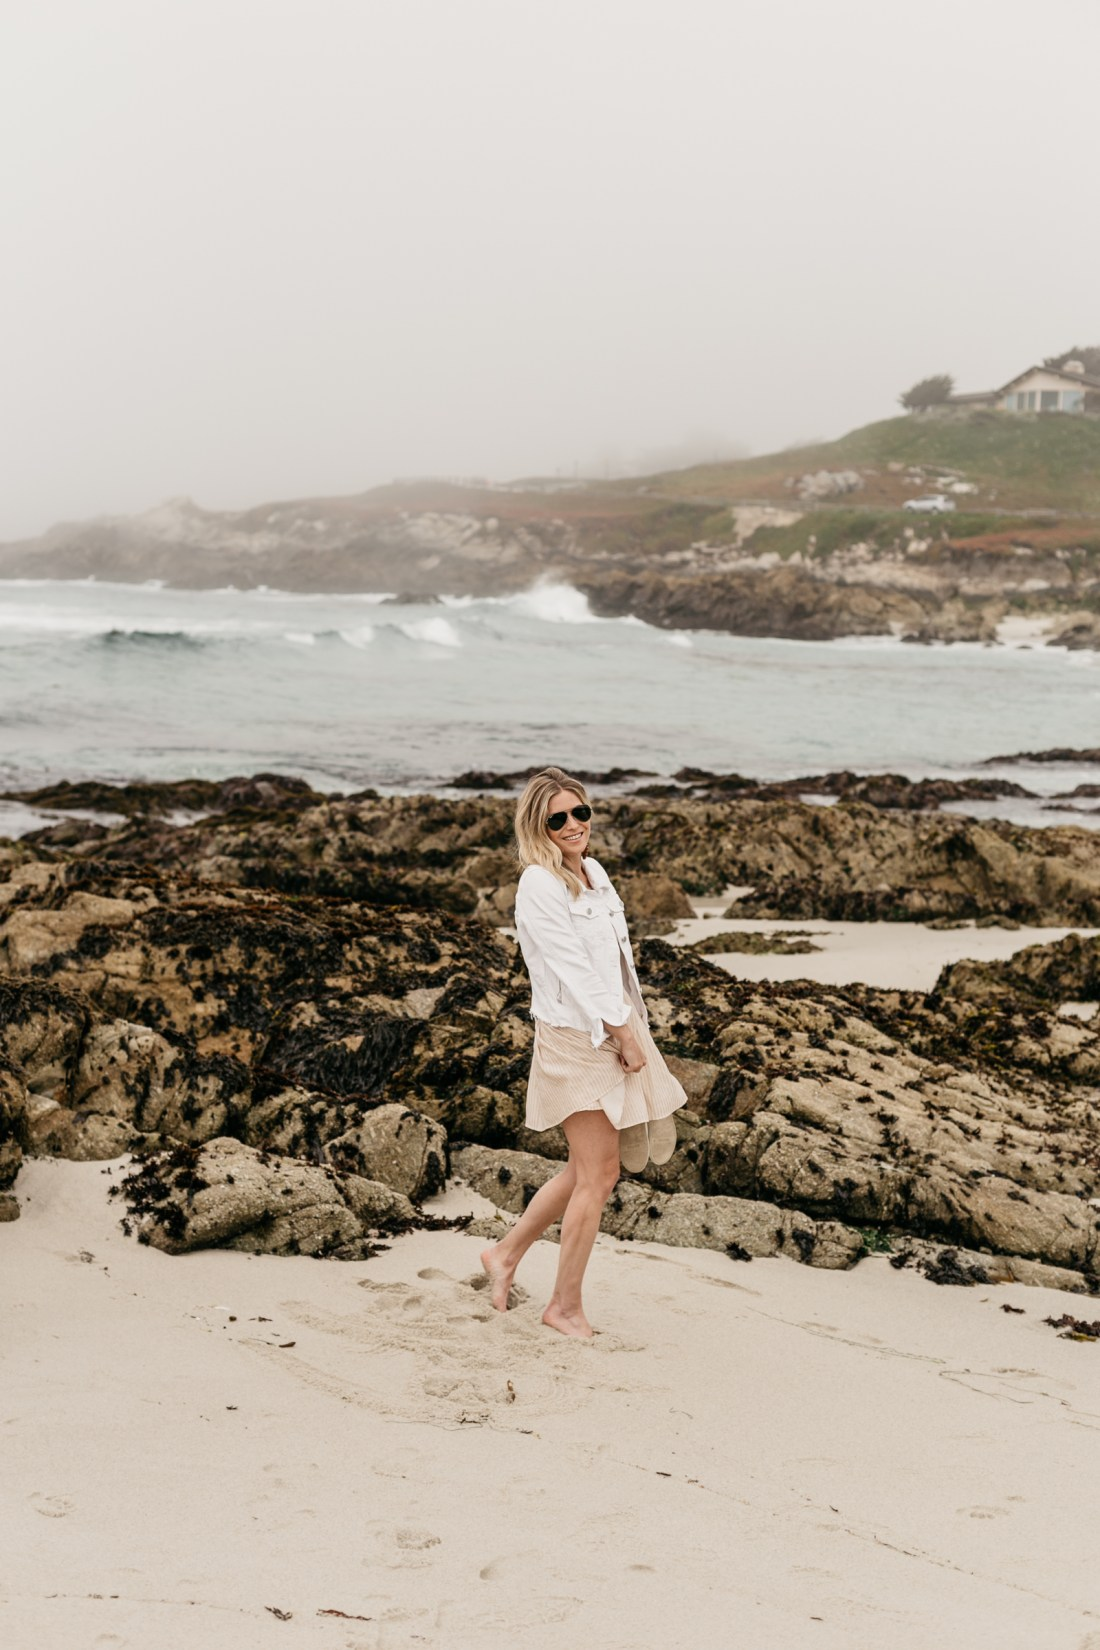 Carmel By The Sea - What To Do | One Small Blonde